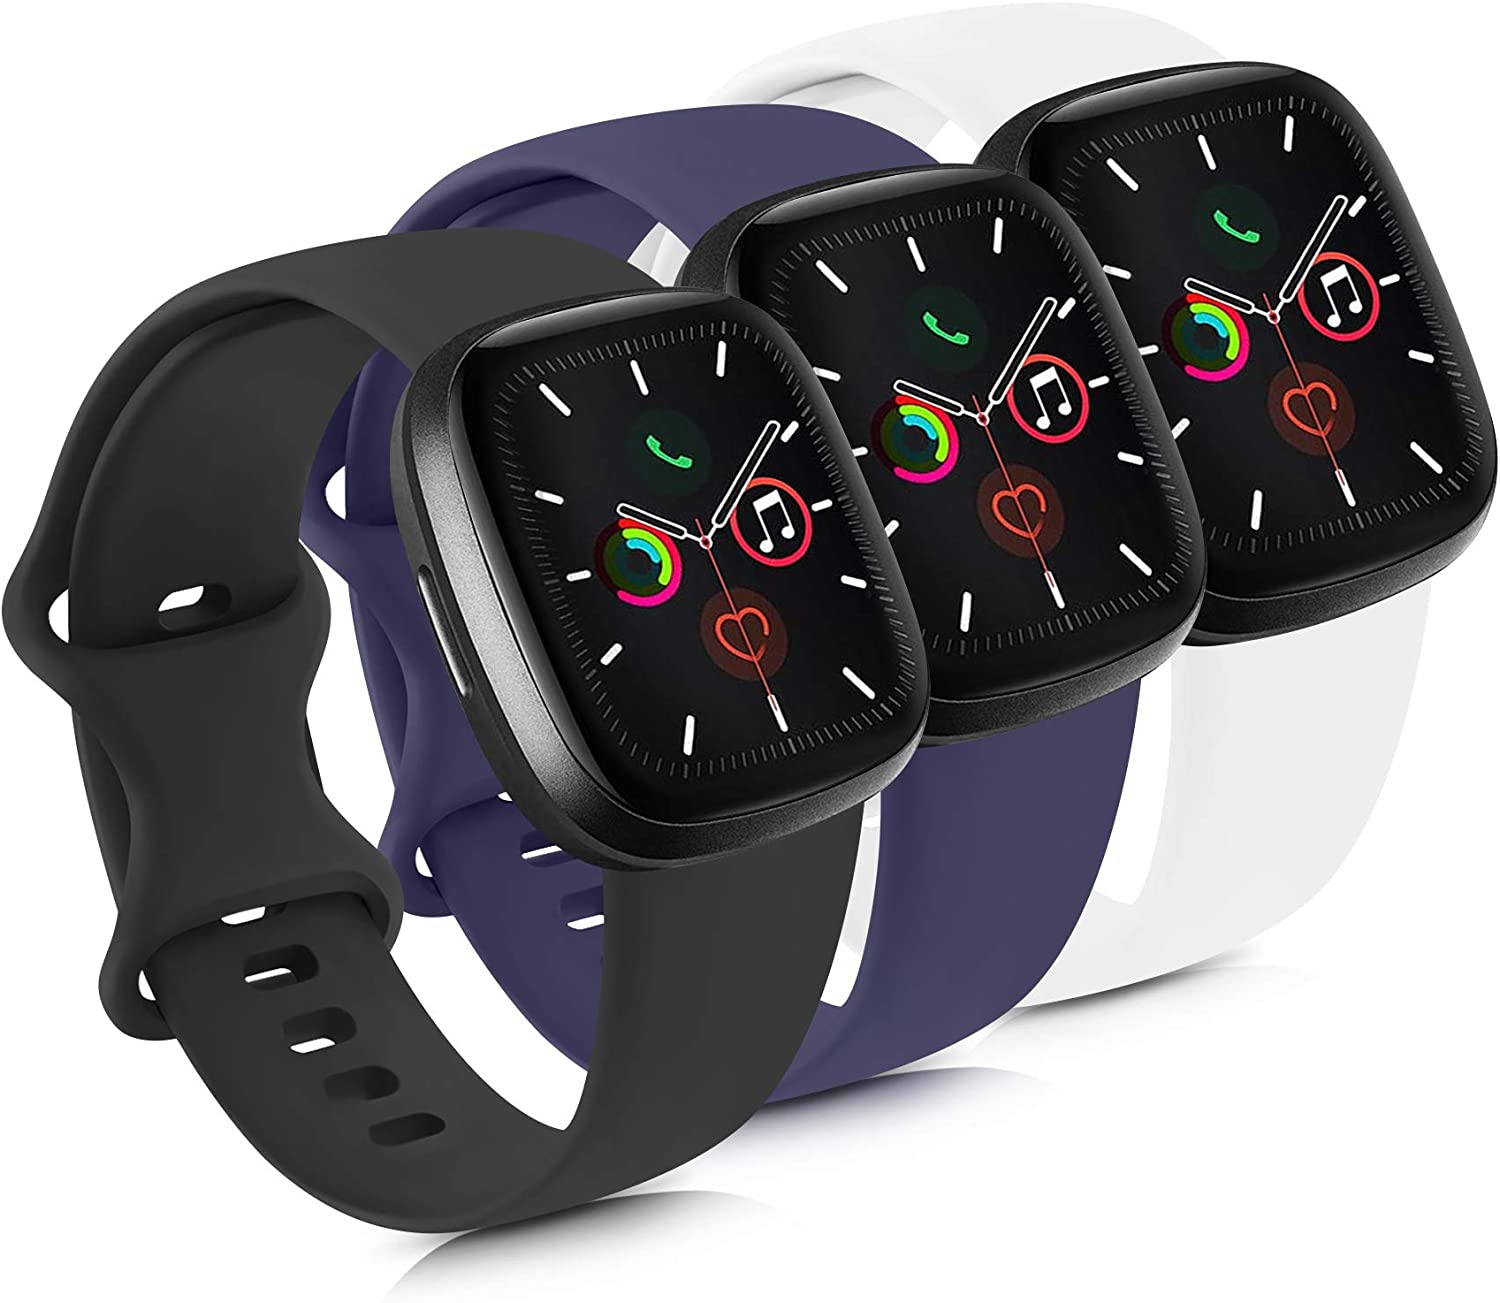 Mugust 3 Pack Sport Bands Compatible with Apple Watch Bands 38mm 42mm 40mm 44mm, Soft Silicone Replacement Strap (Black/Navy Blue/White, 42mm/44mm-M/L)